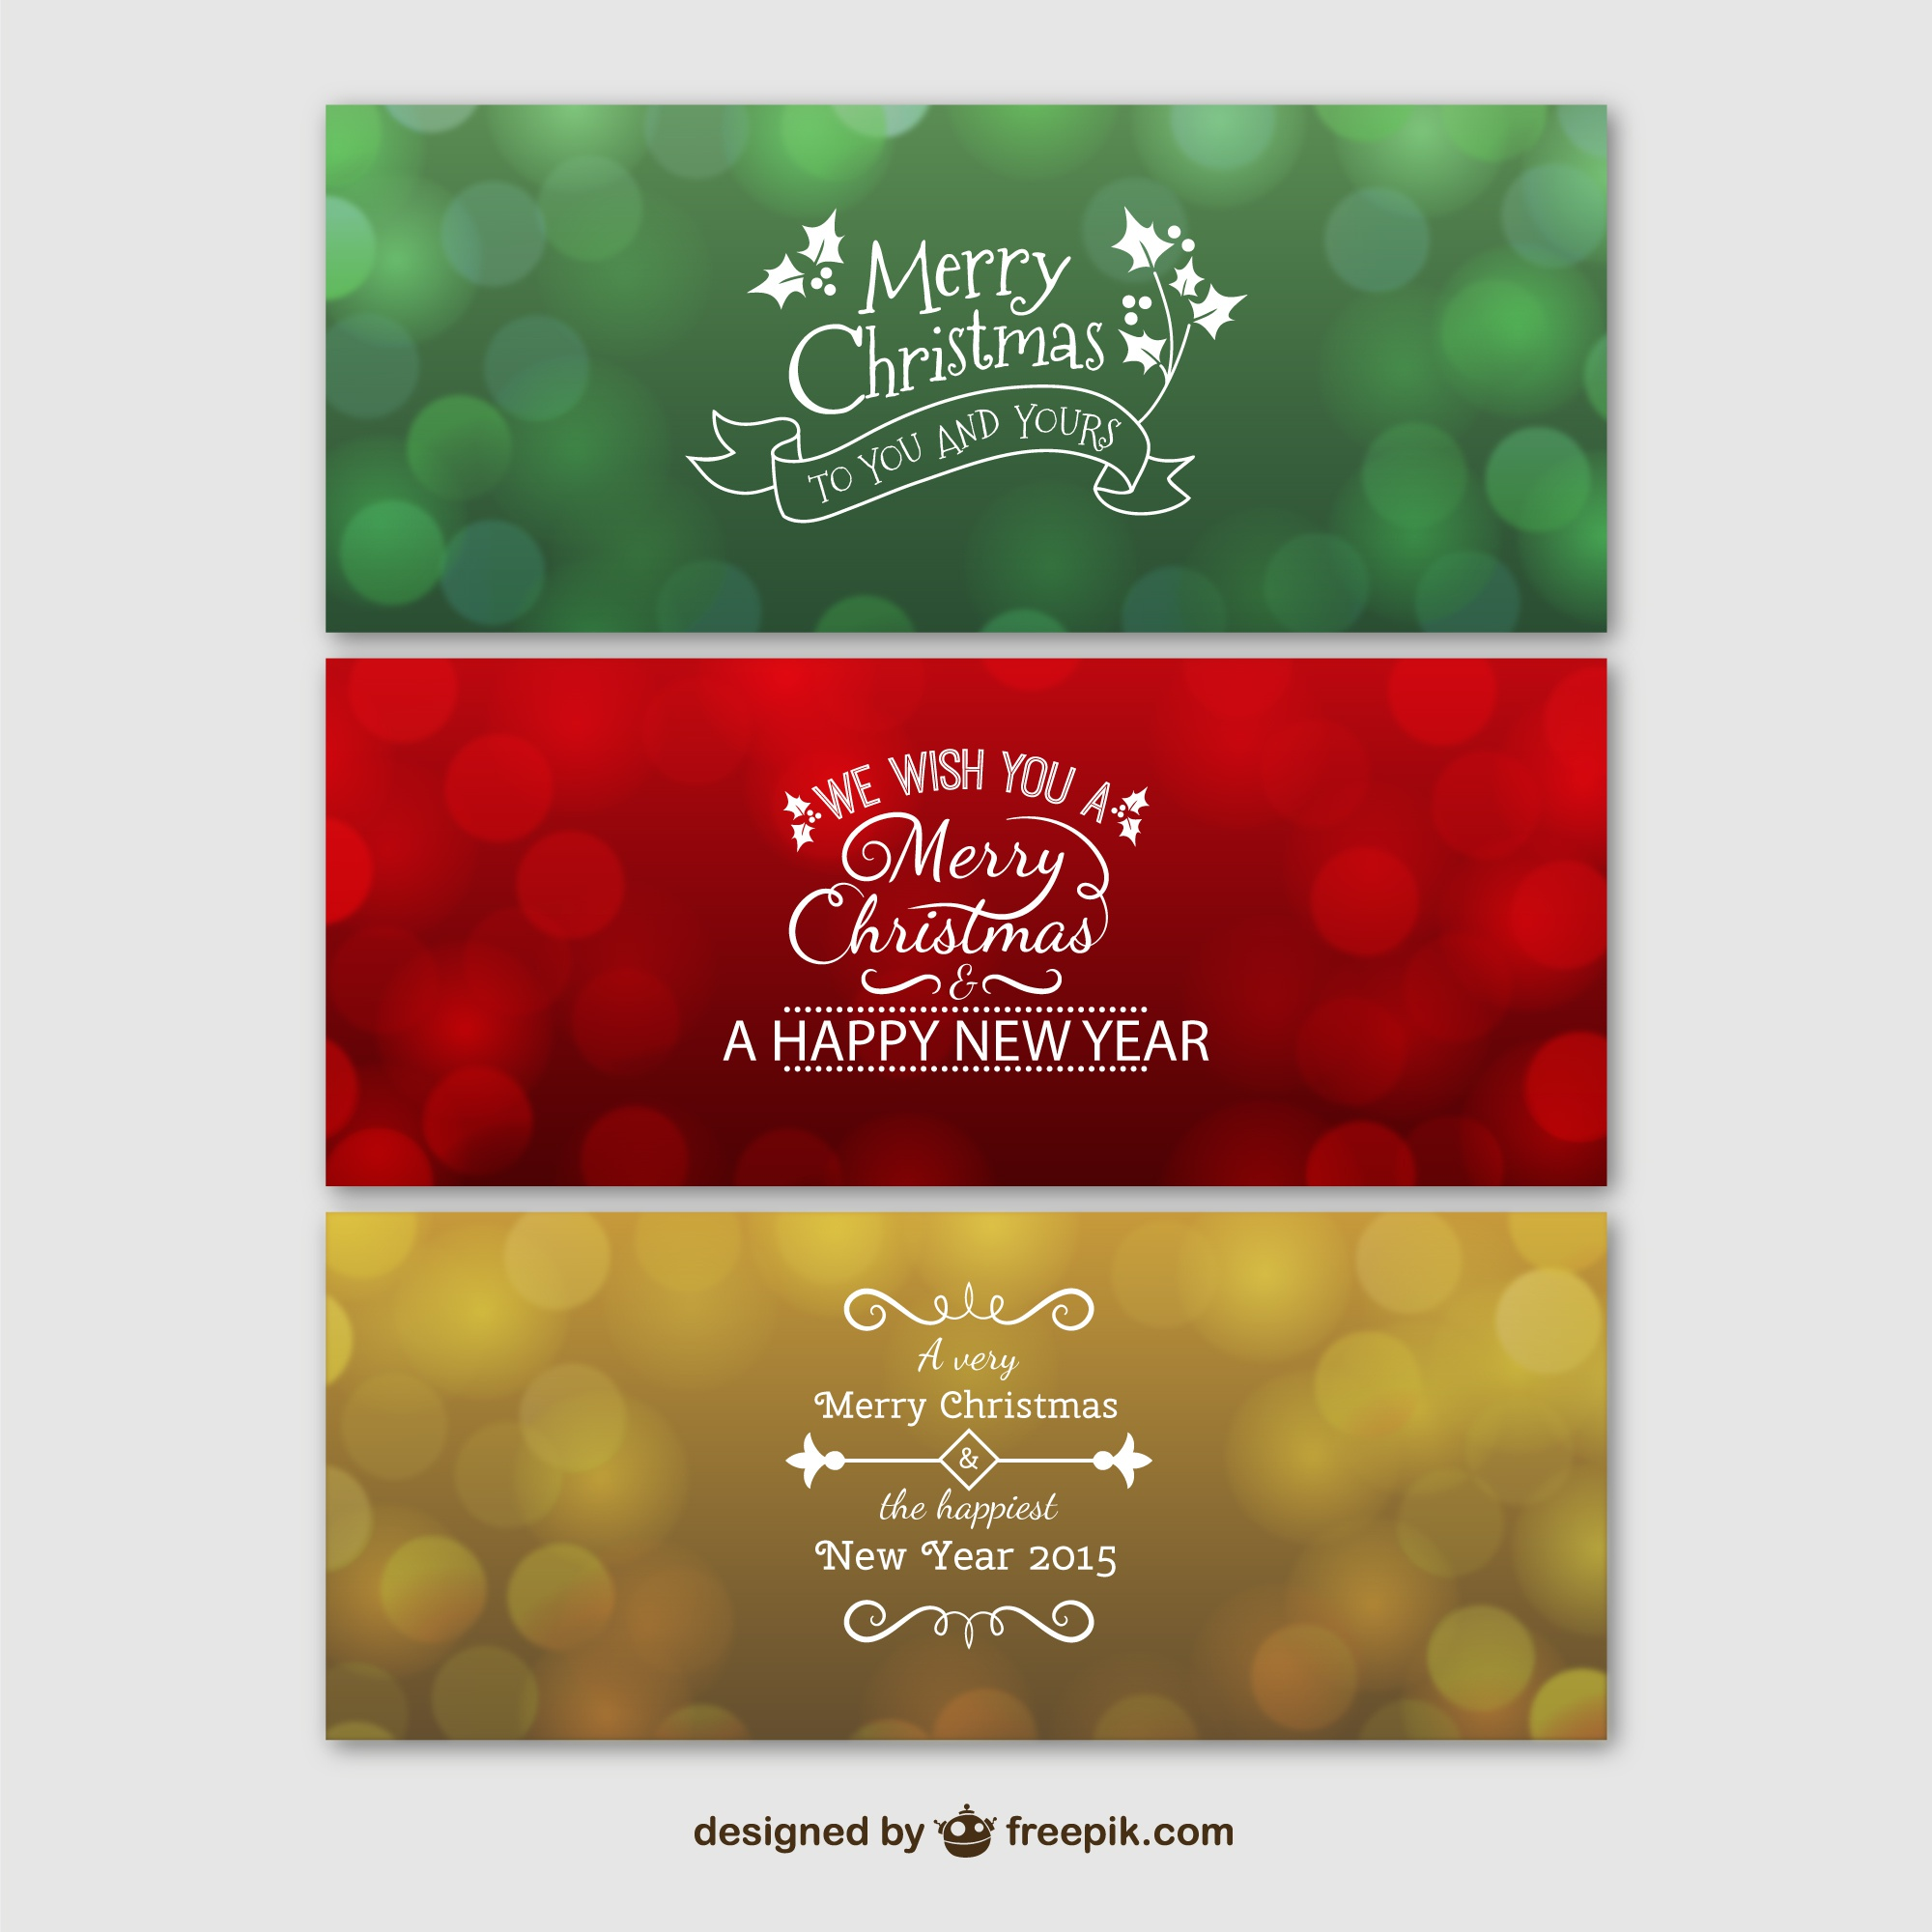 Colorful merry Christmas banners